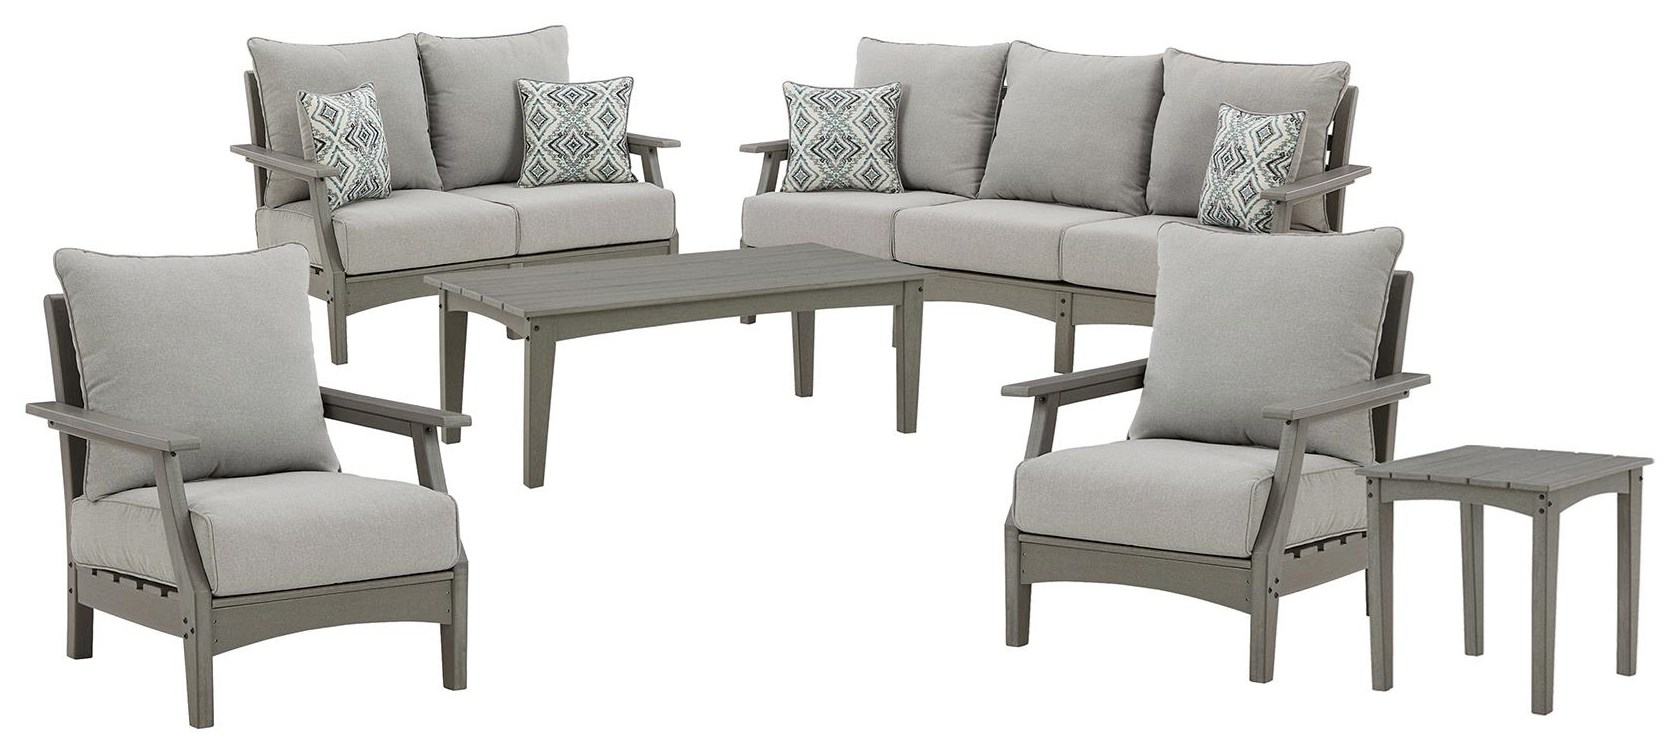 Visola Sofa, Loveseat, CHAIRS, END, COCKTAIL TABLES by Ashley (Signature Design) at Johnny Janosik